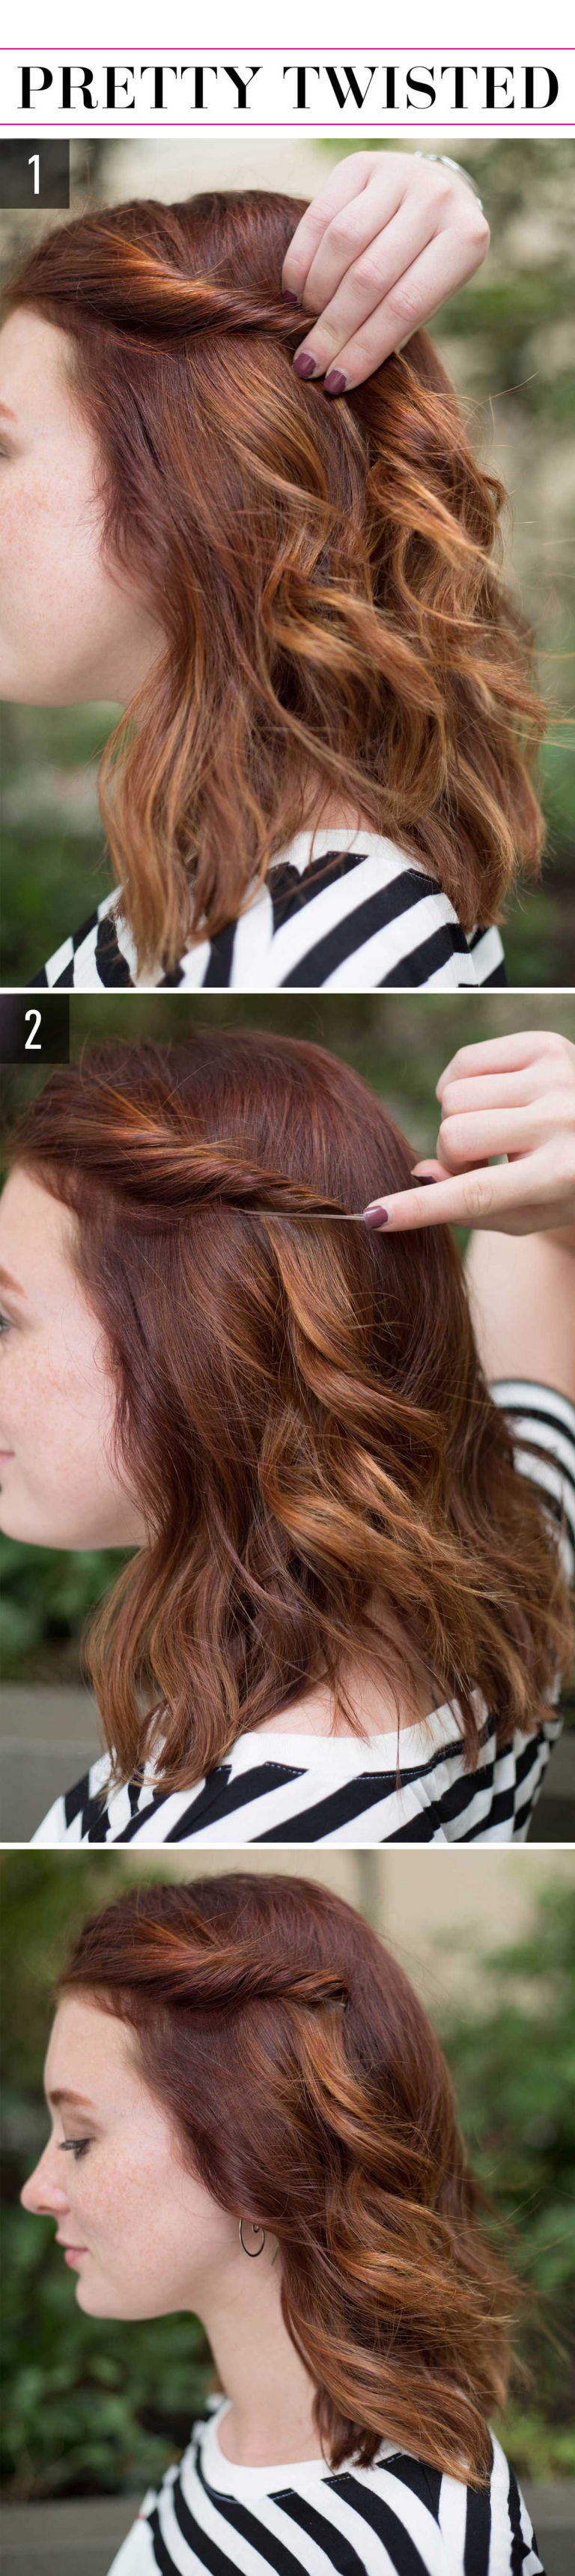 Simple and easy hairstyle tutorials for daily look easy hairstyles